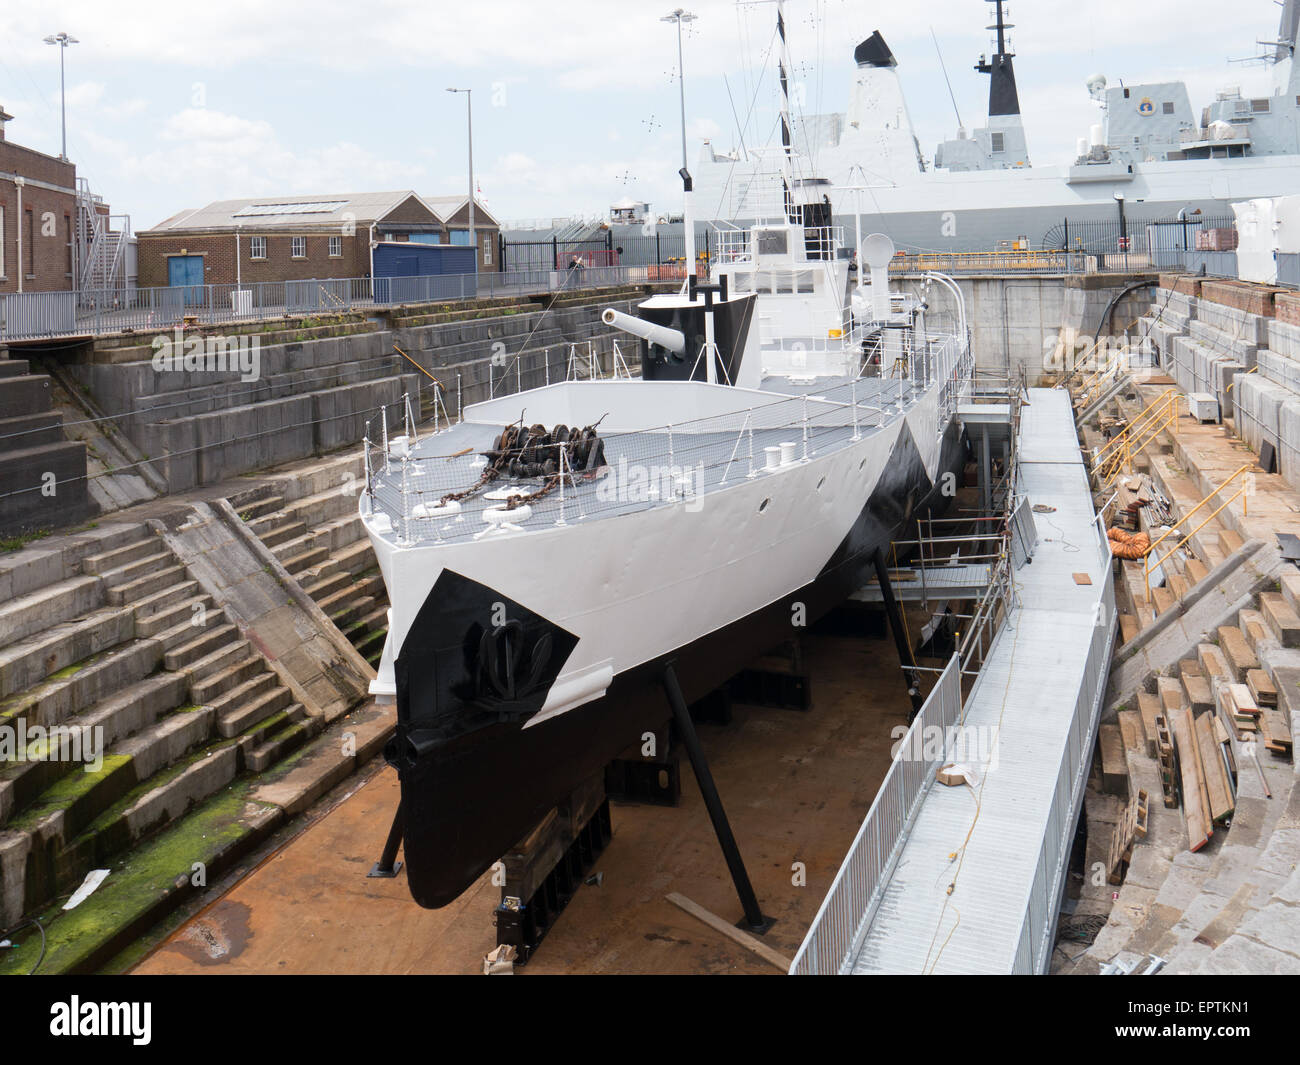 HMS M33 an M29 Class Monitor of the Royal Navy, ready to be opened to the public in 2015 at Portsmouth Historic Stock Photo